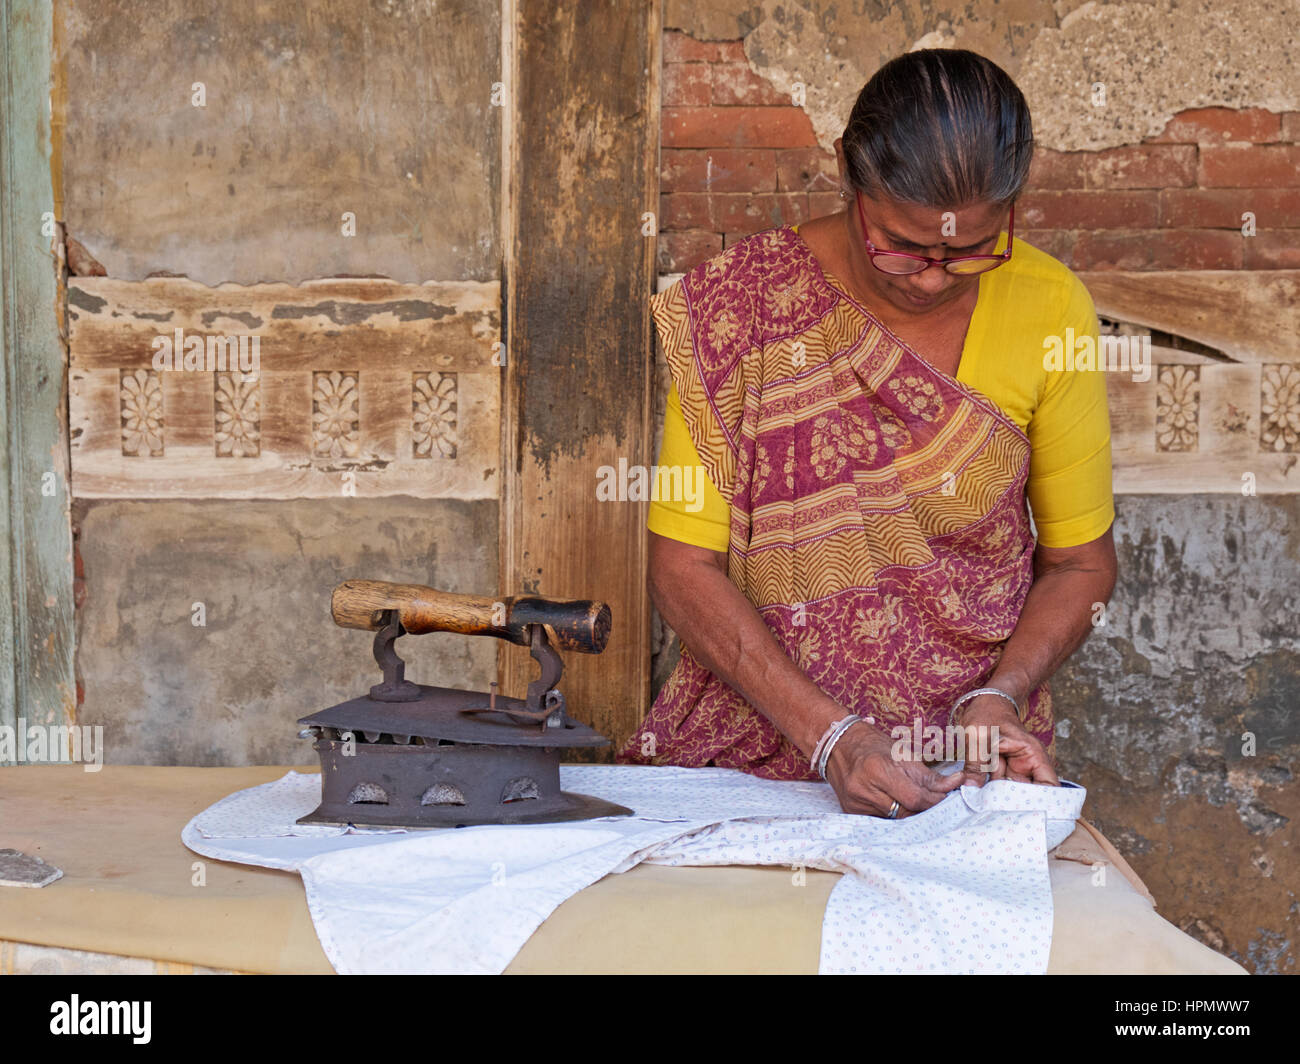 Unidentified woman in a back street in Ahmedabad, India, ironing clothes with a traditional wooden handled metal - Stock Image